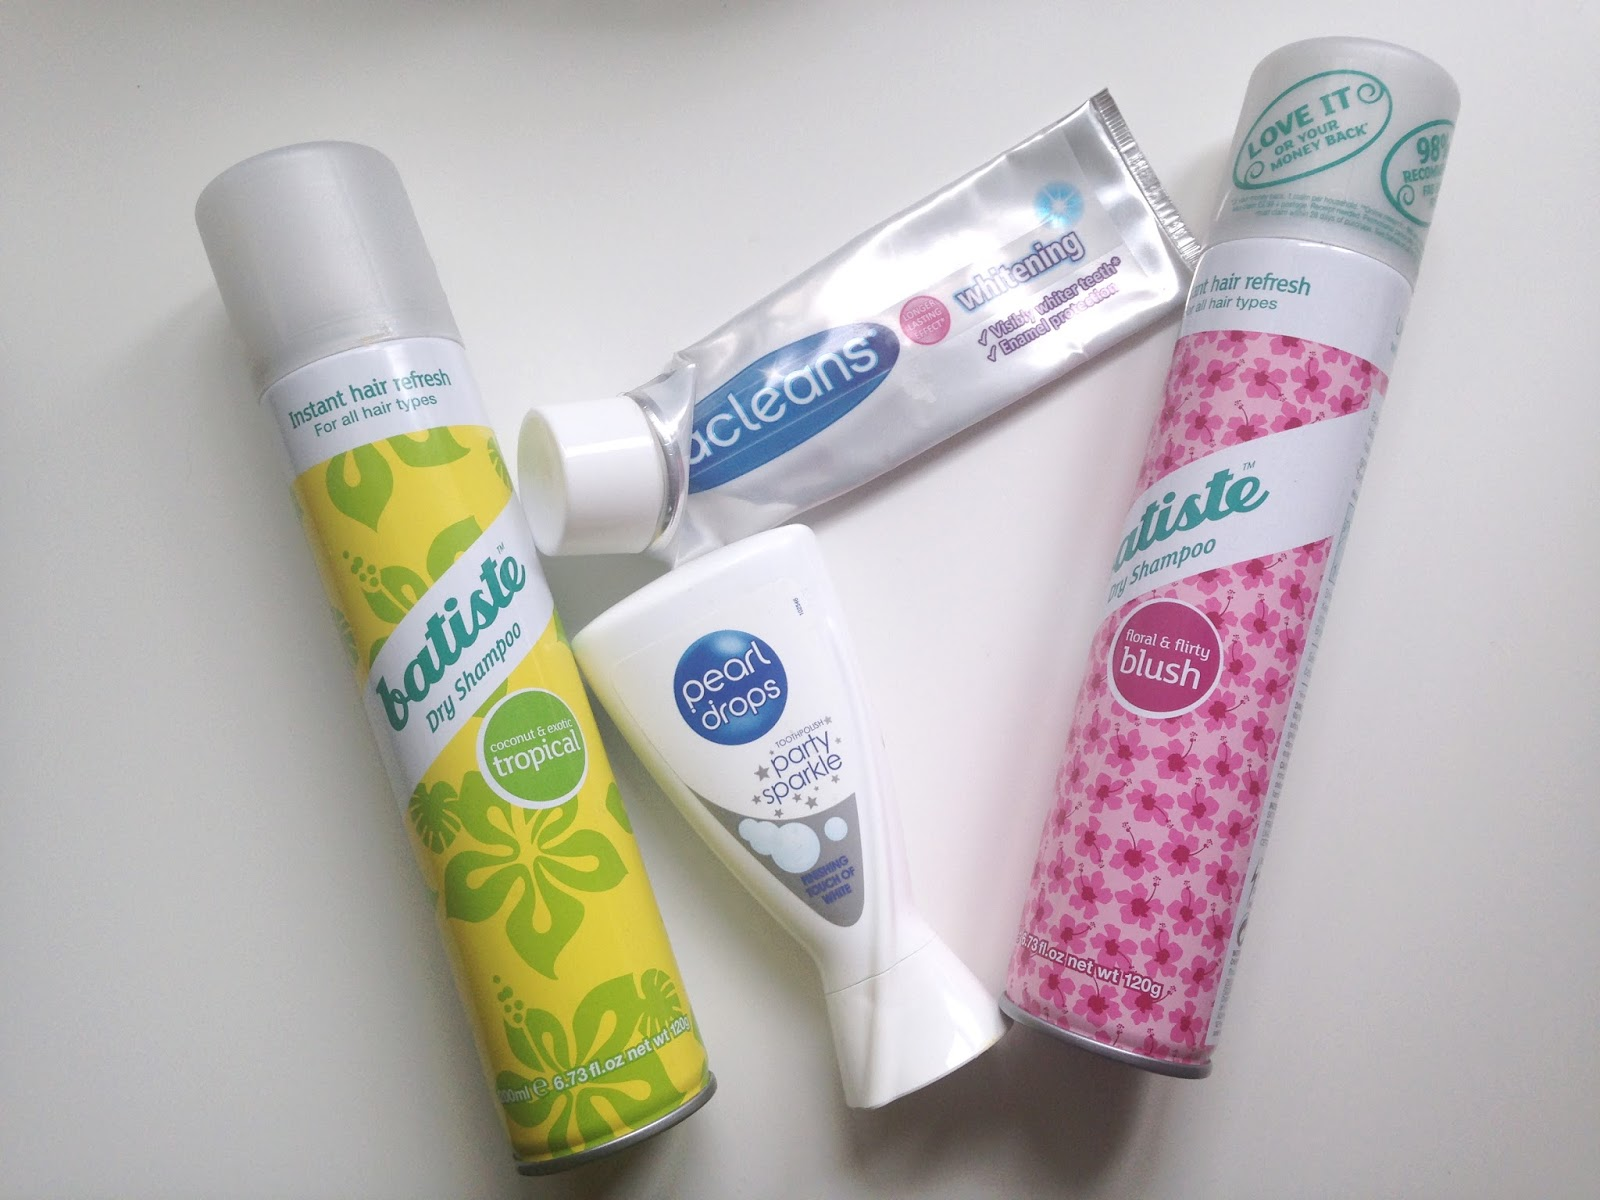 Batiste Dry Shampoo Pearl Drops Party Sparkle Macleans Whitening